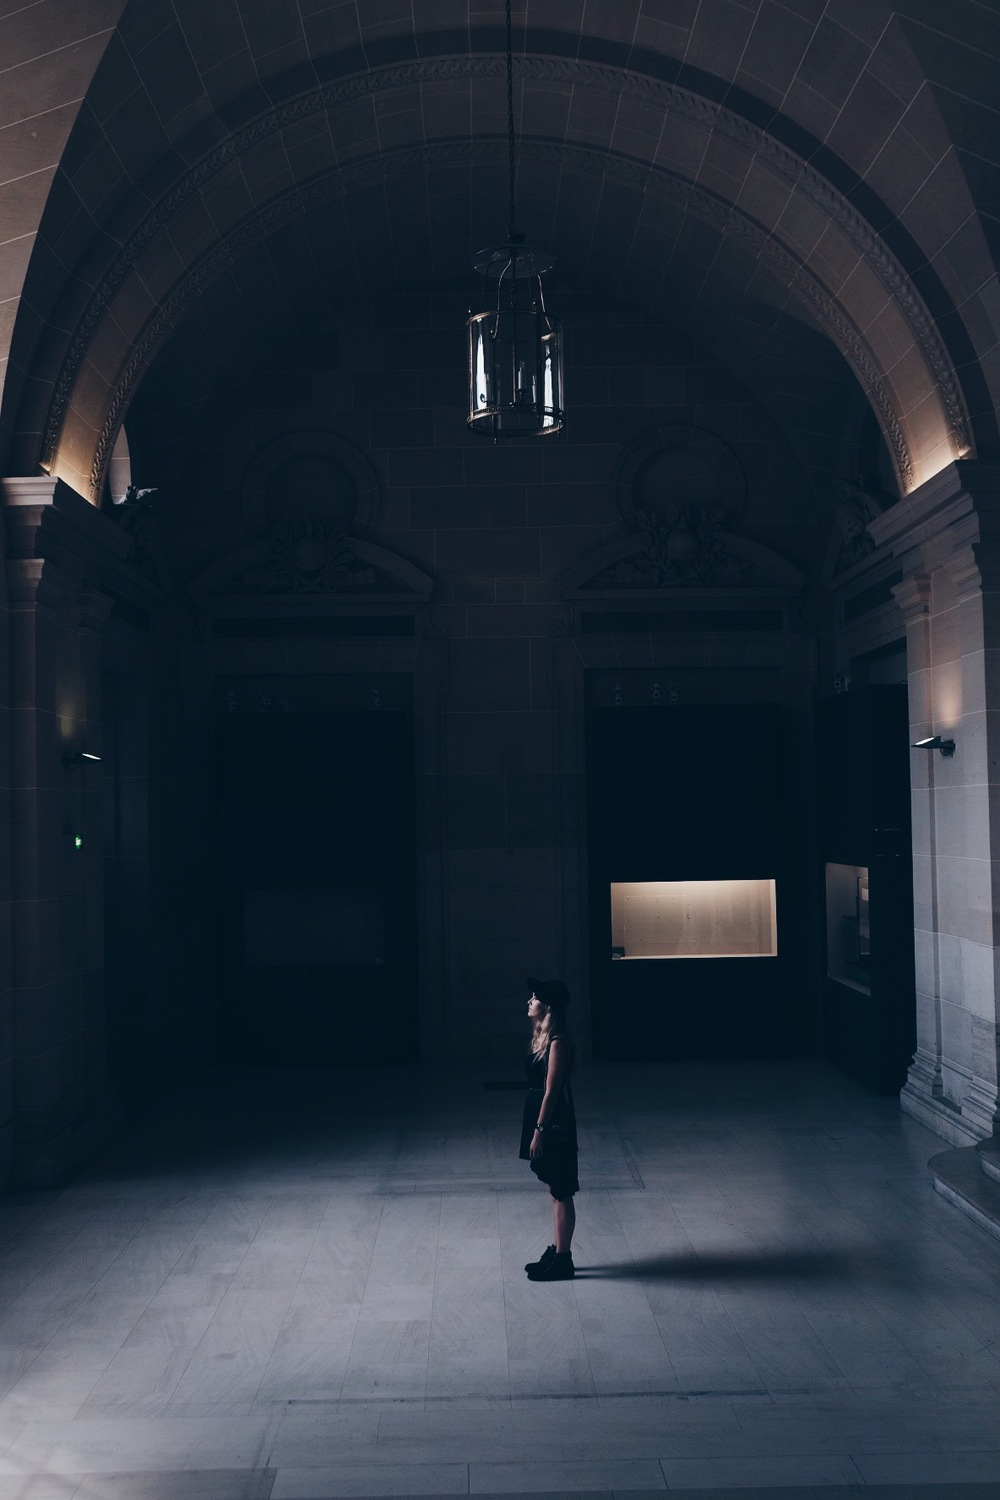 We found the only part of the museum where there was no one else in the room and it was absolutely wonderful.